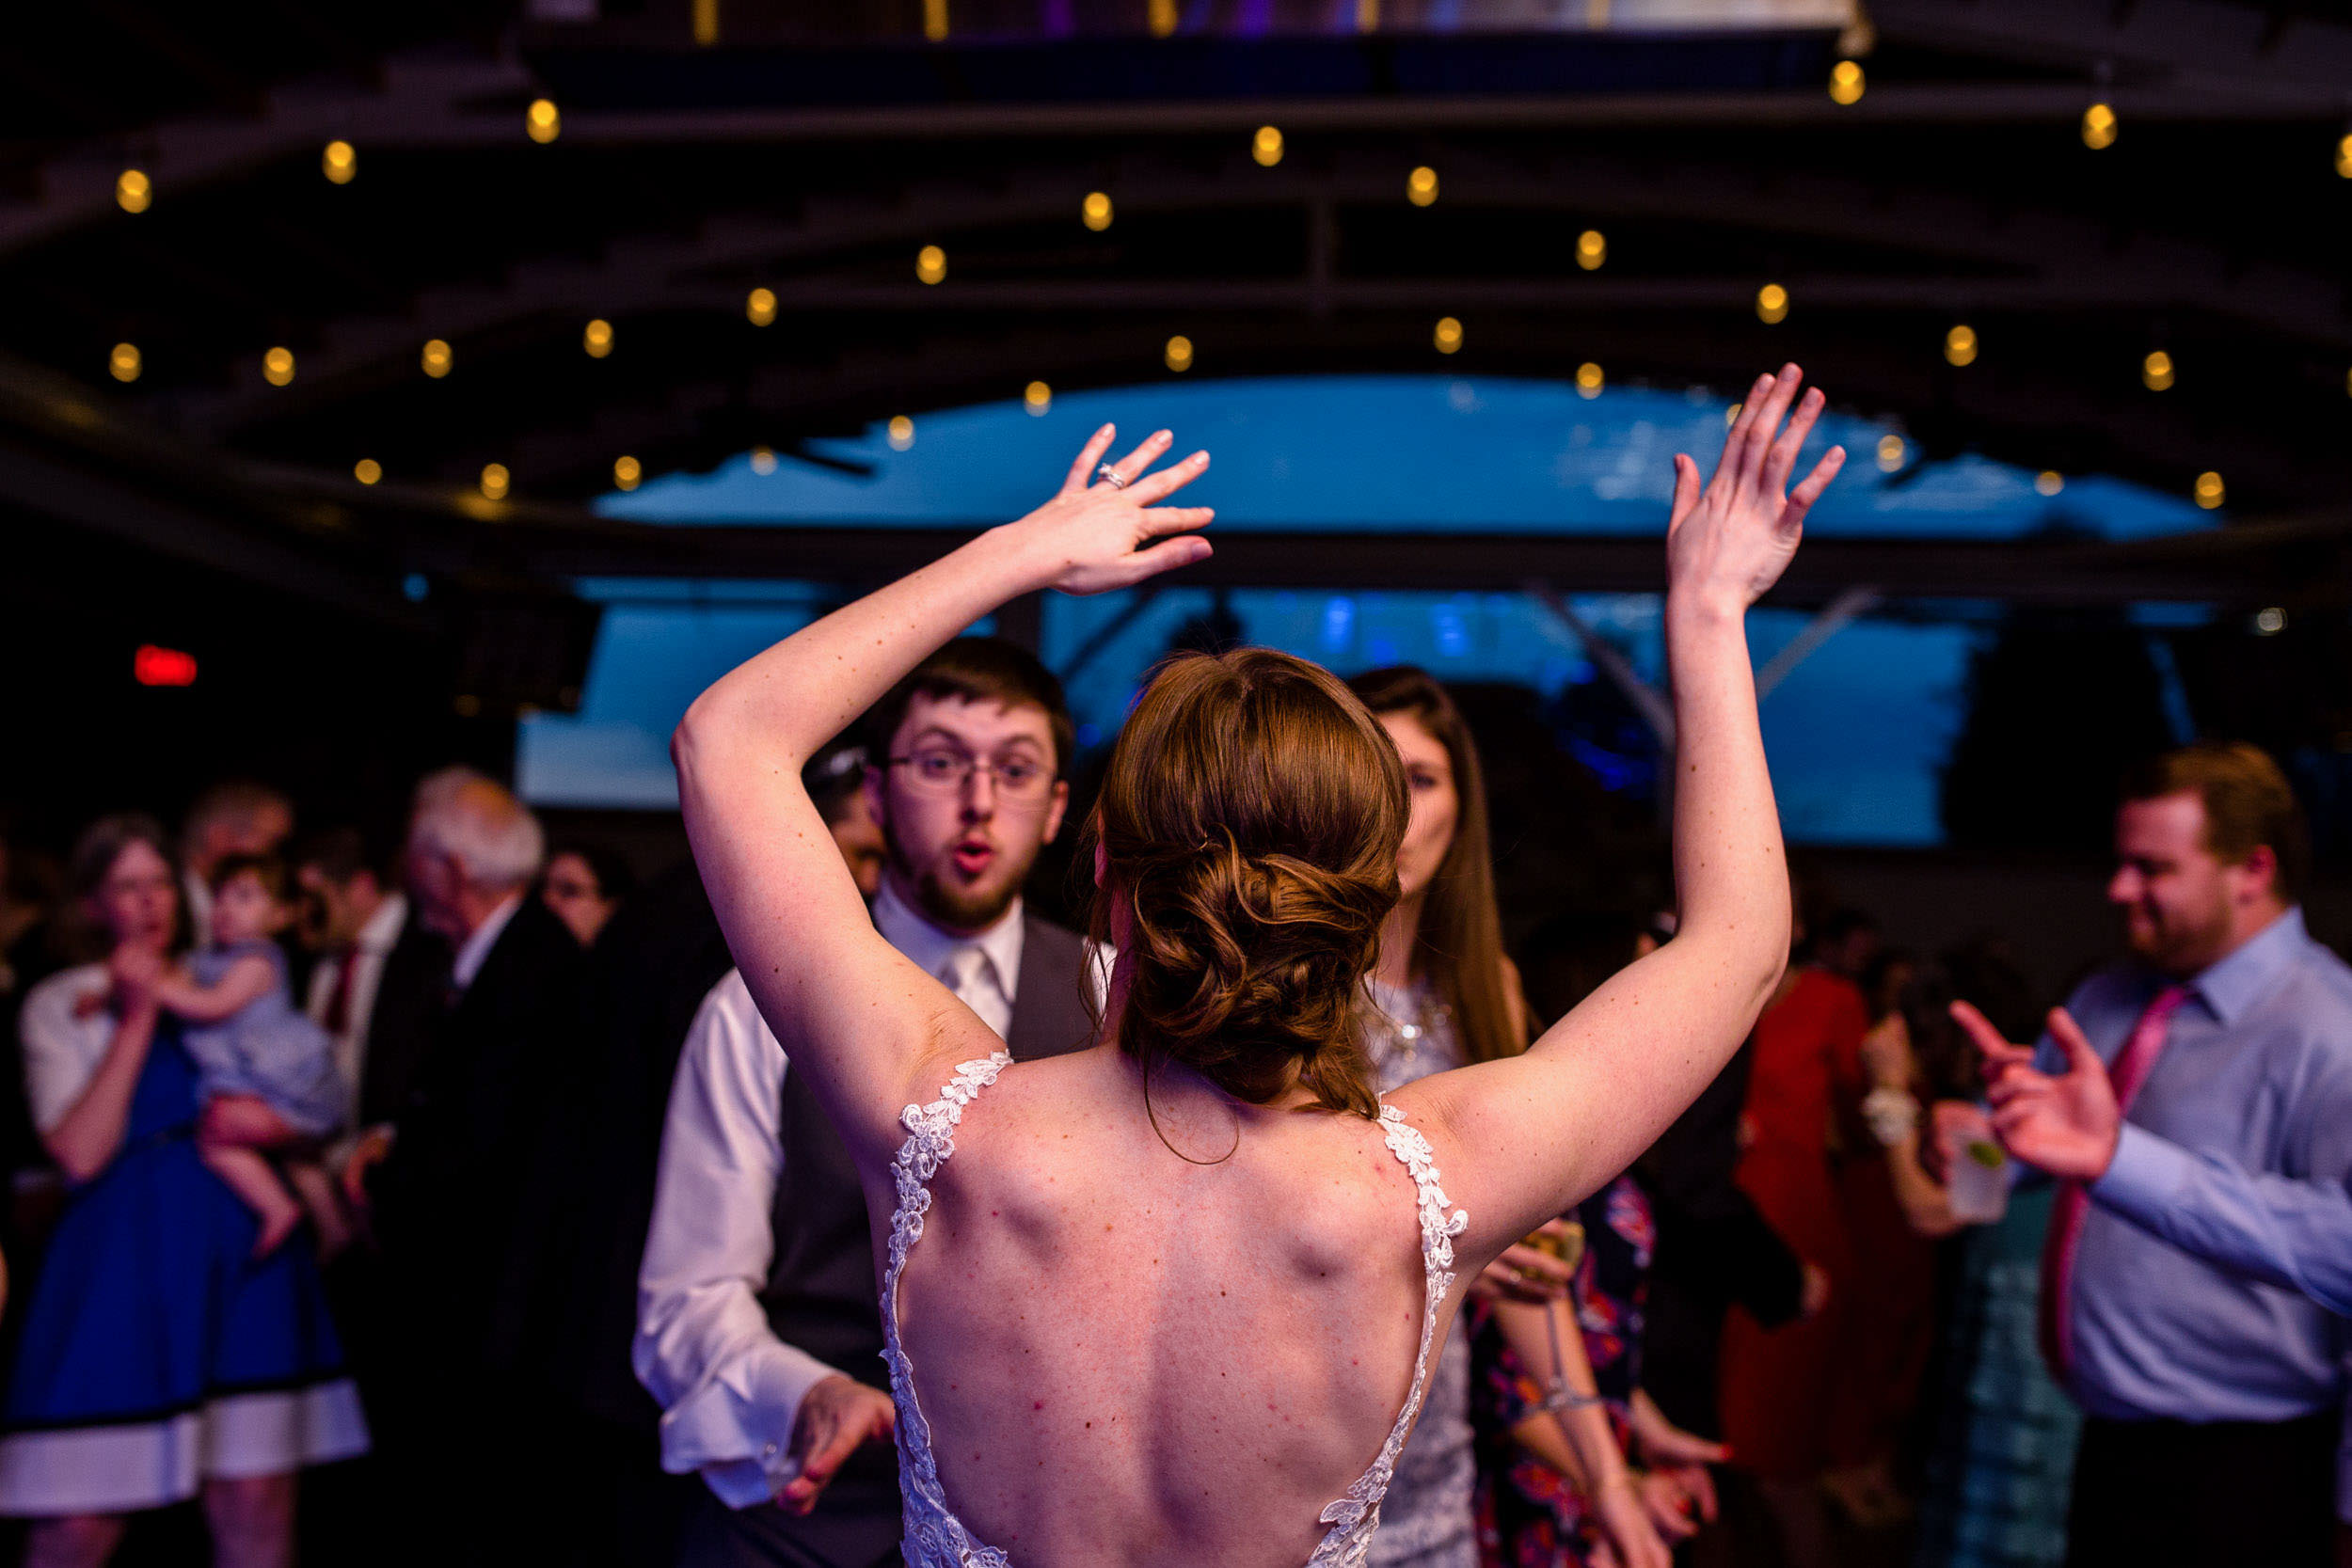 bride-dancing-groom-suprised.jpg